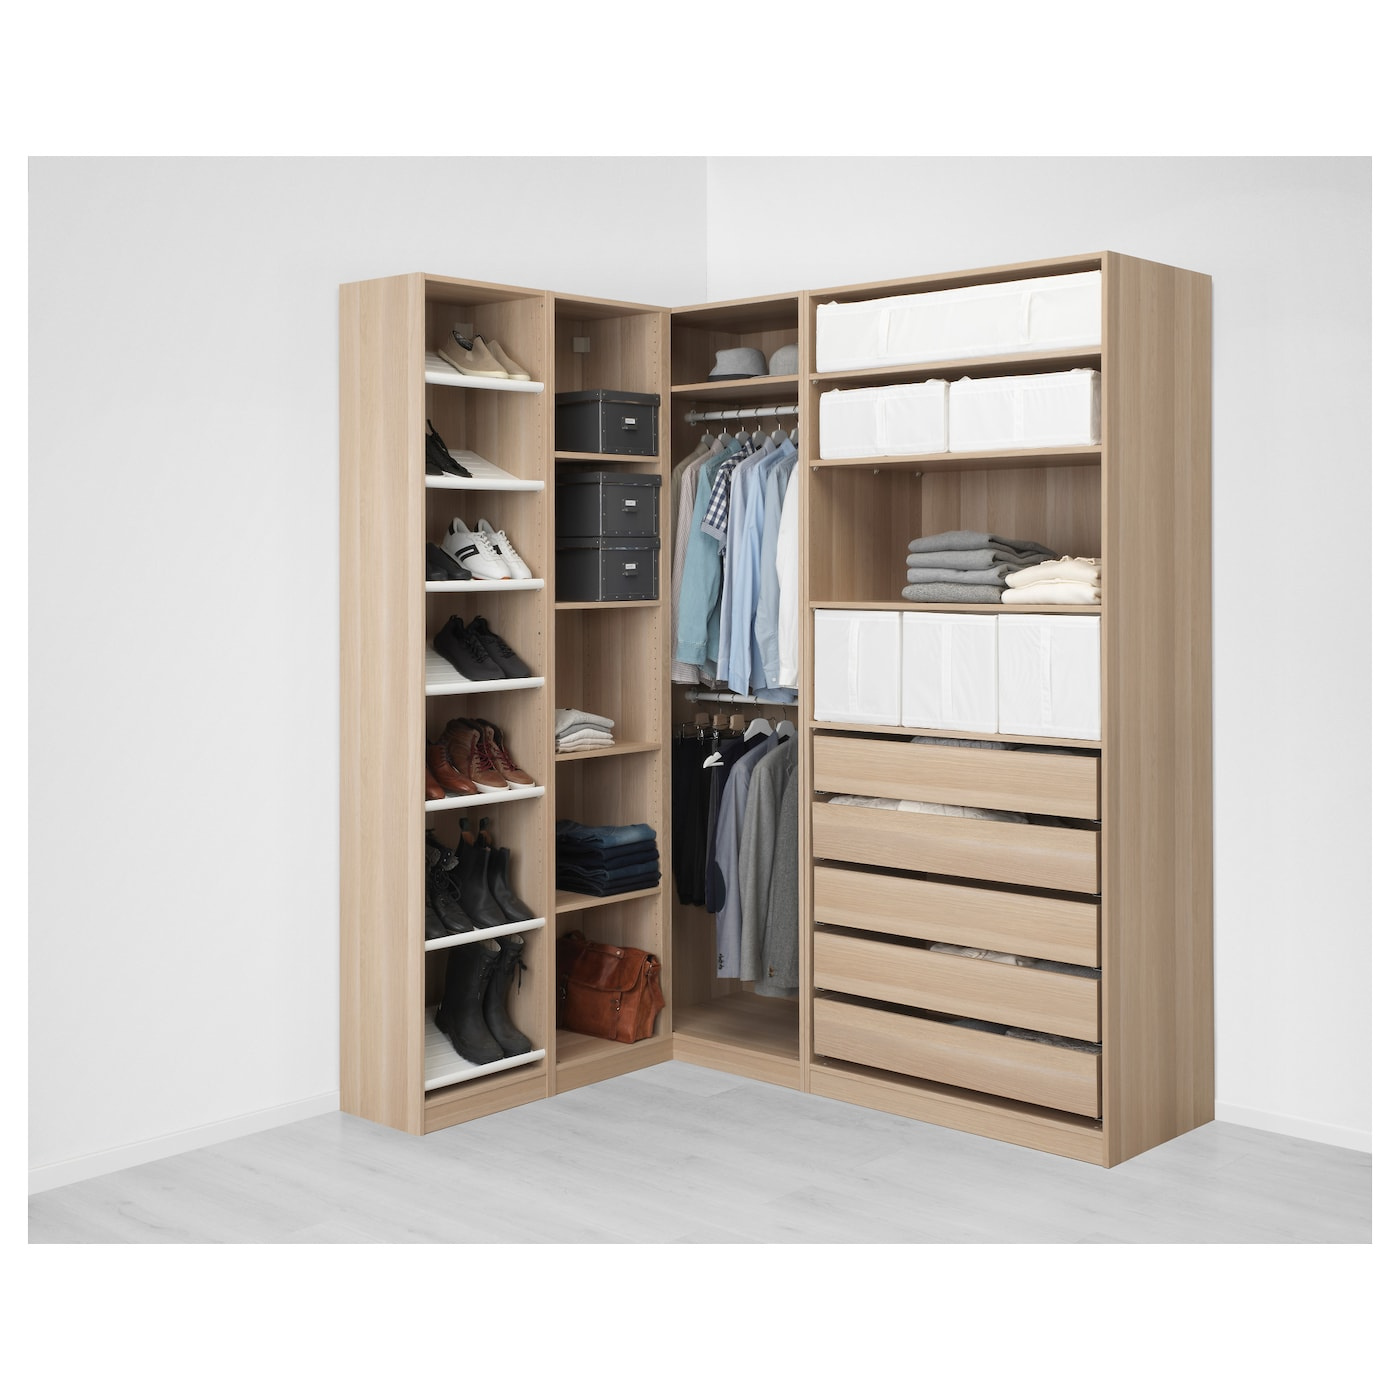 Cabina Armadio Ad Angolo Ikea.Pax Corner Wardrobe White Stained Oak Effect Ikea